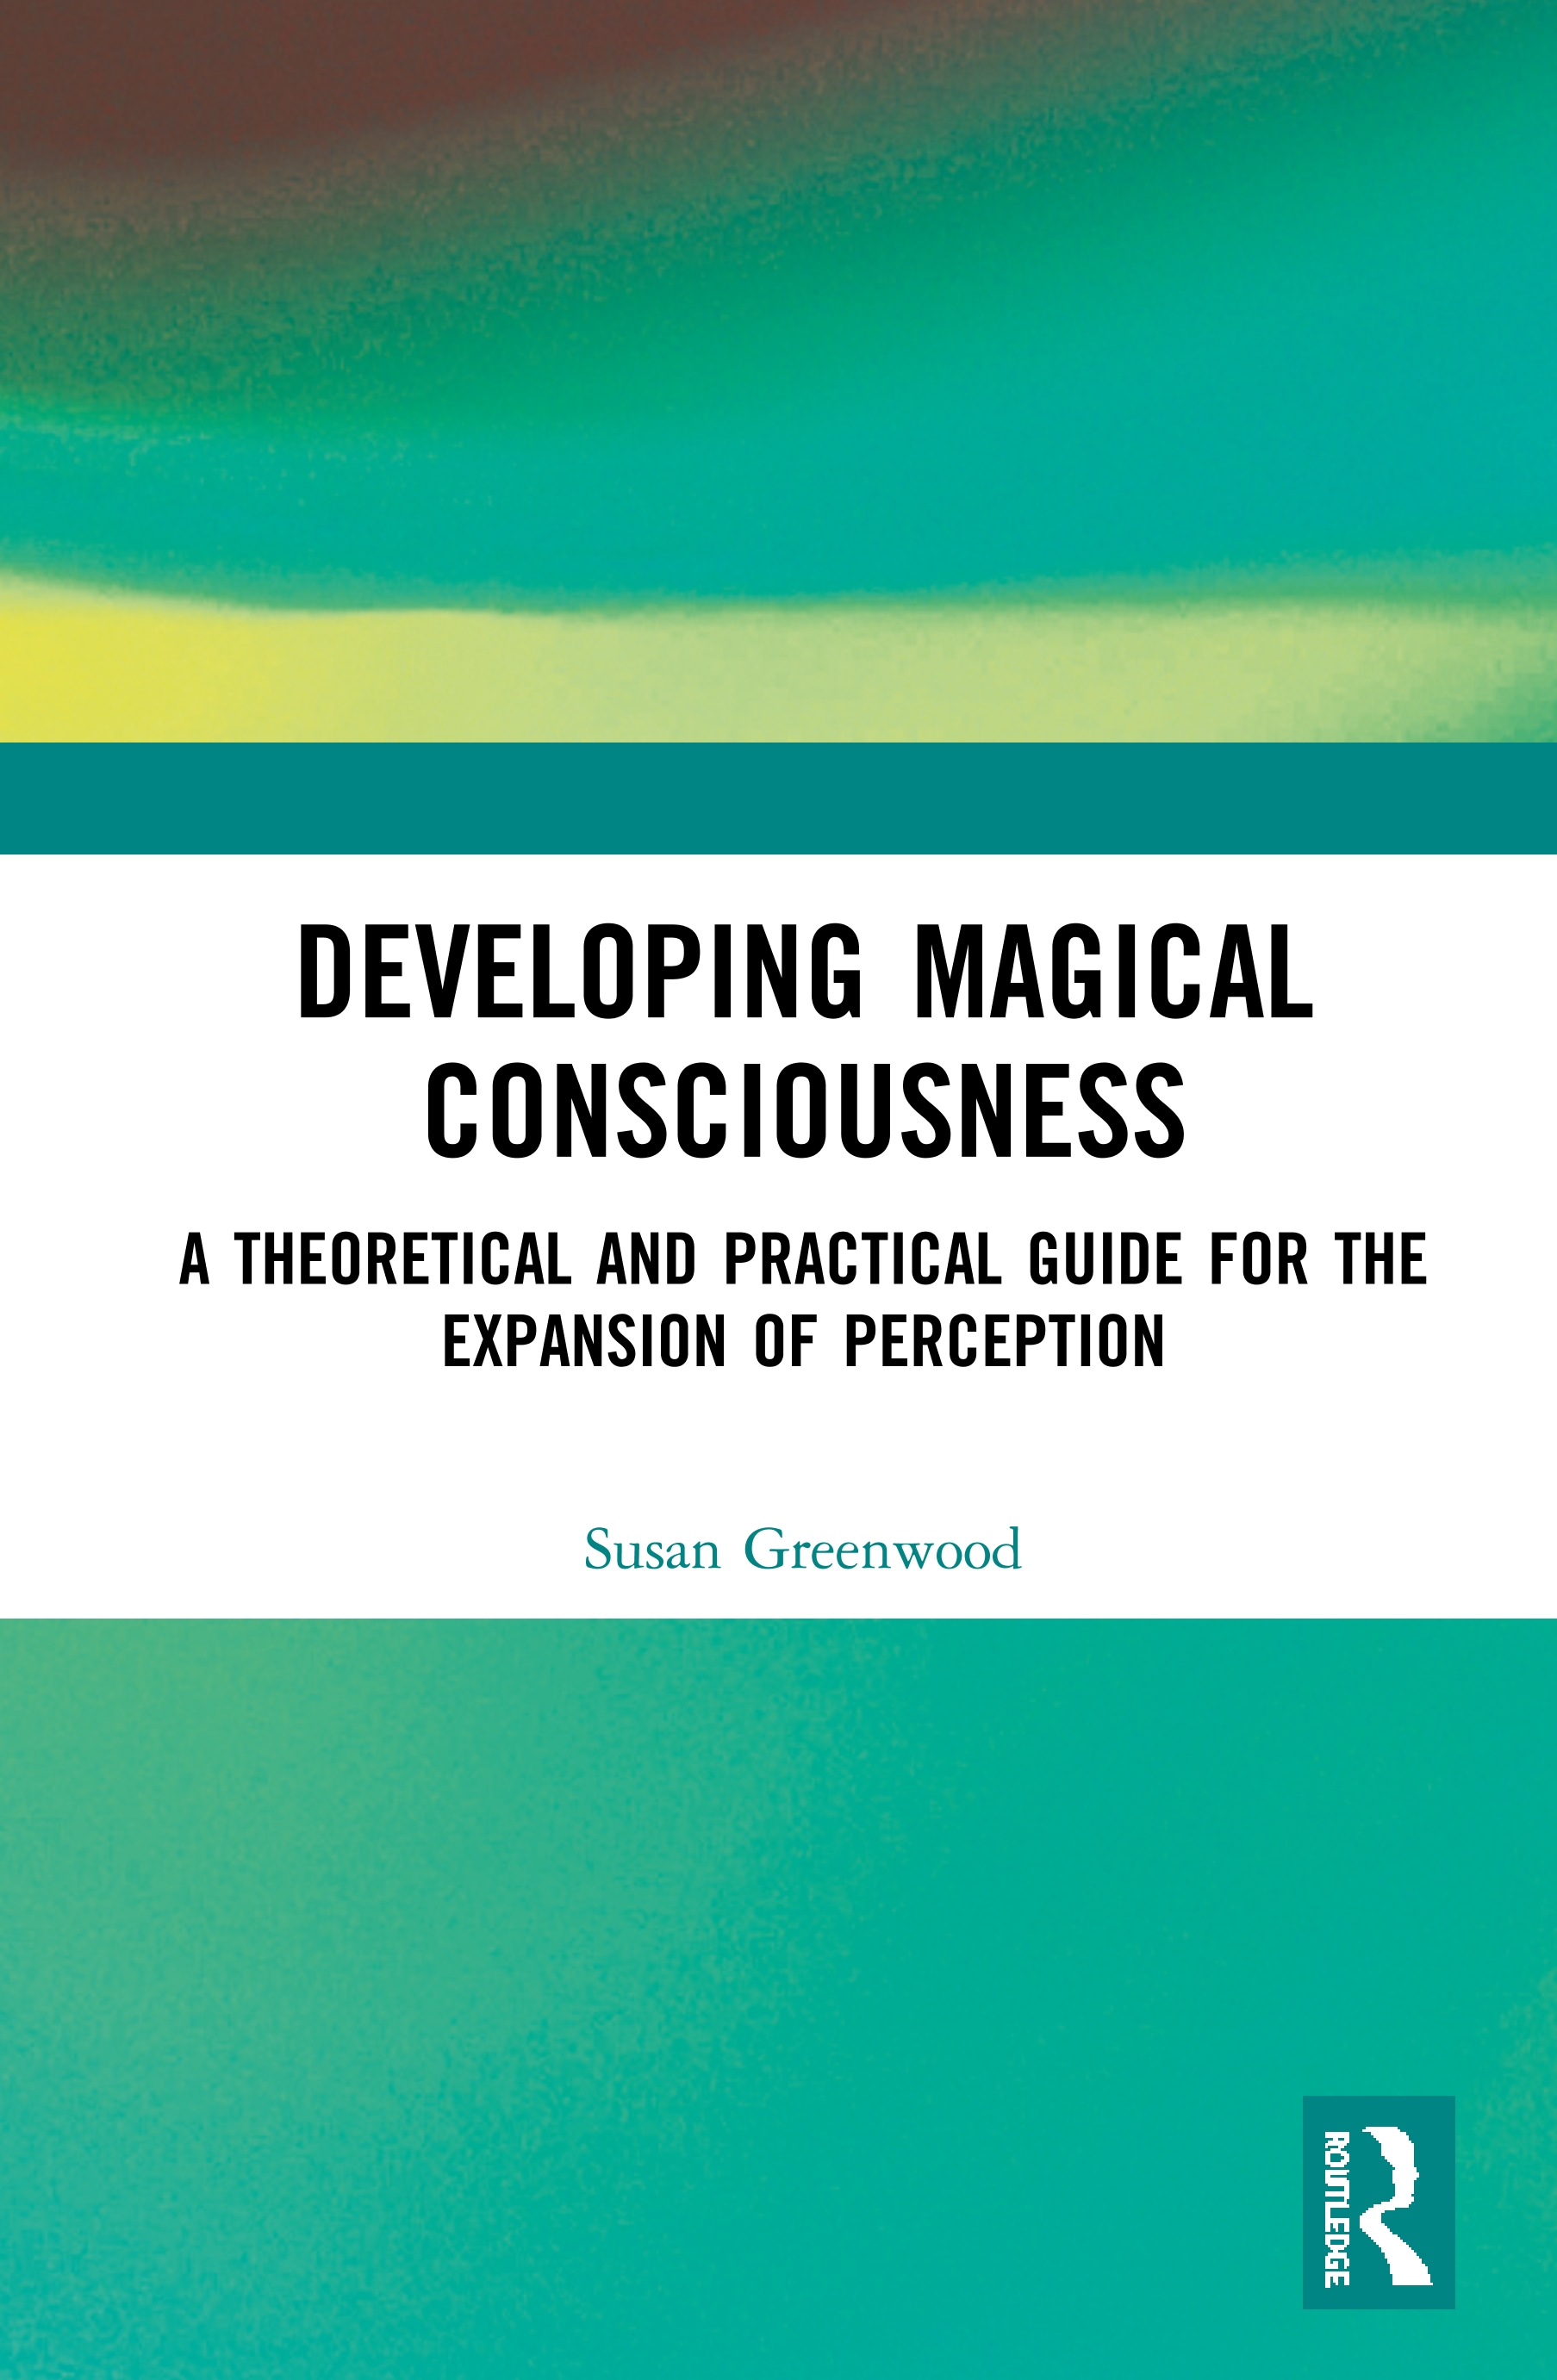 Developing Magical Consciousness: A Theoretical and Practical Guide for the Expansion of Perception book cover